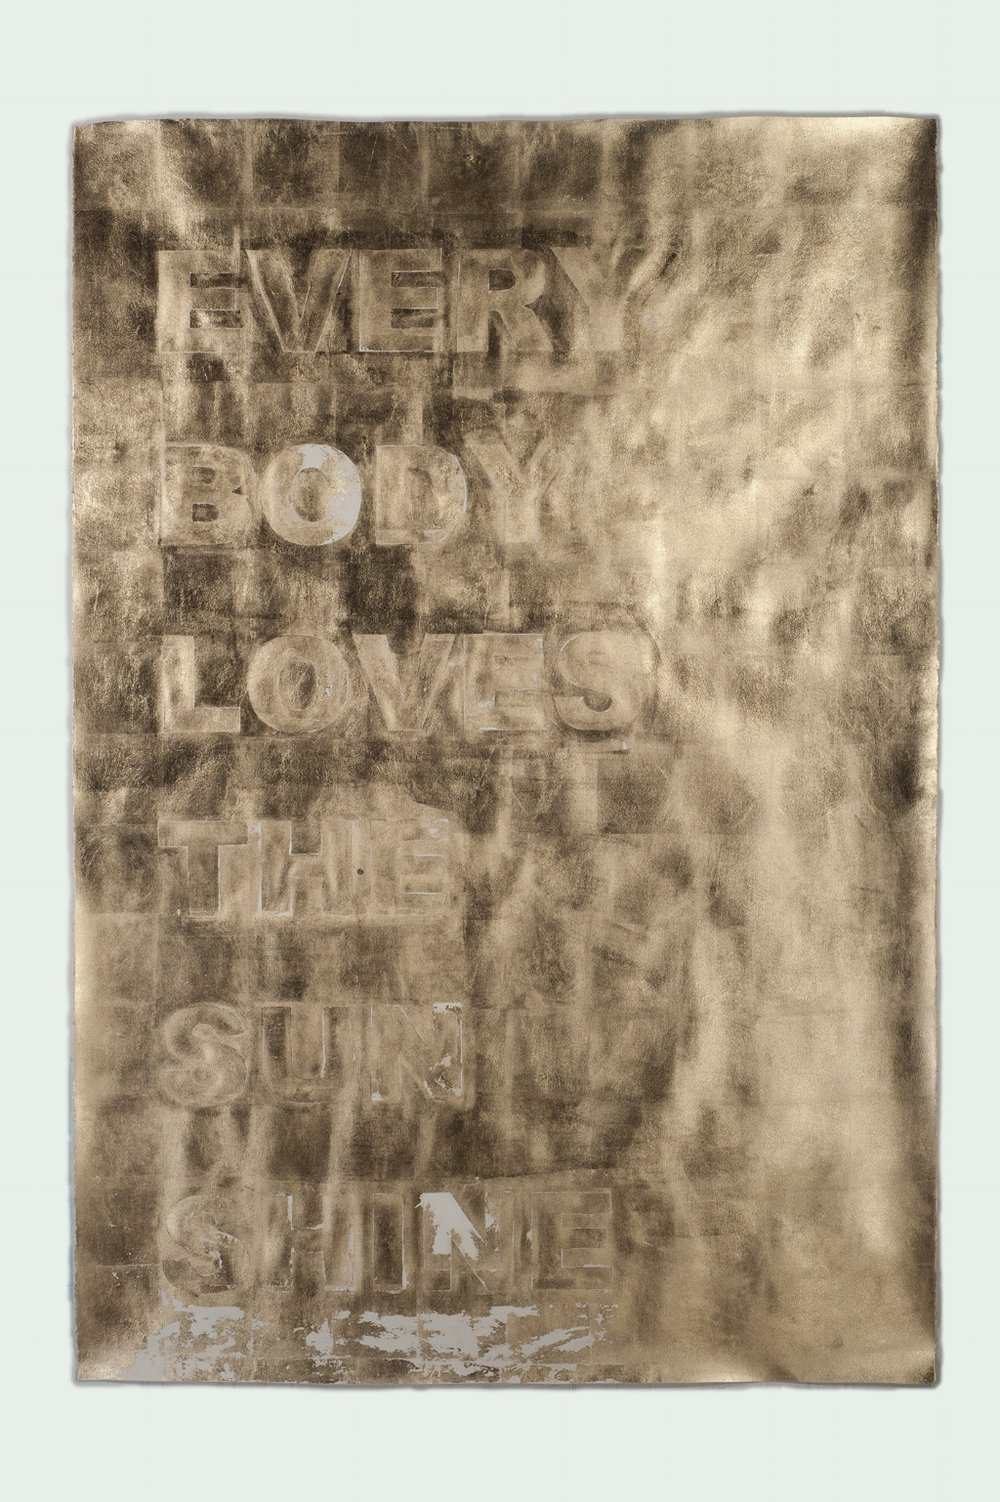 EVERY BODY LOVES THE SUNSHINE (Vertical Stack / Split), 2016